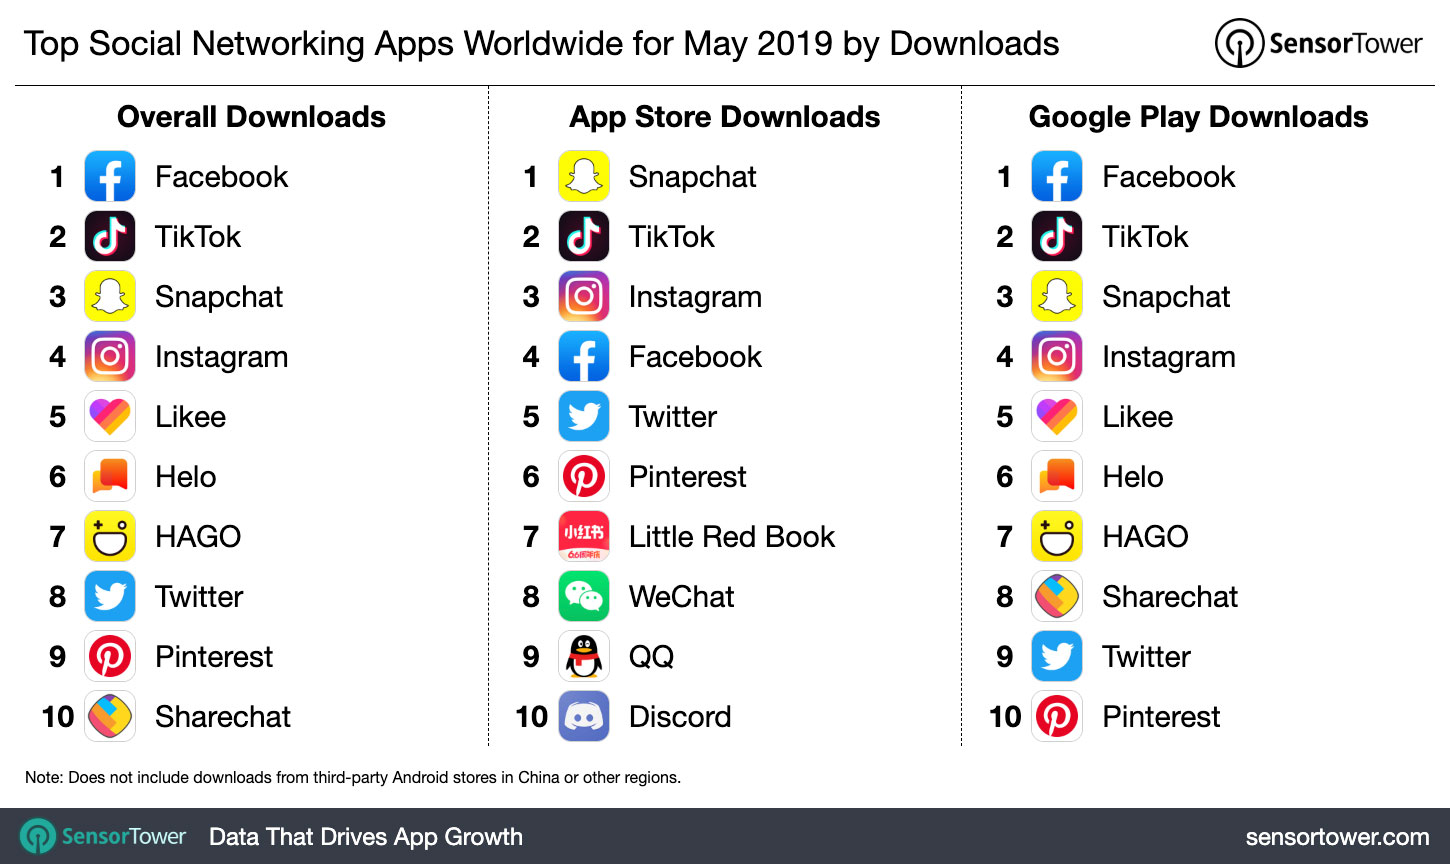 Facebook, TikTok, Snapchat, Instagram: Which are the Most